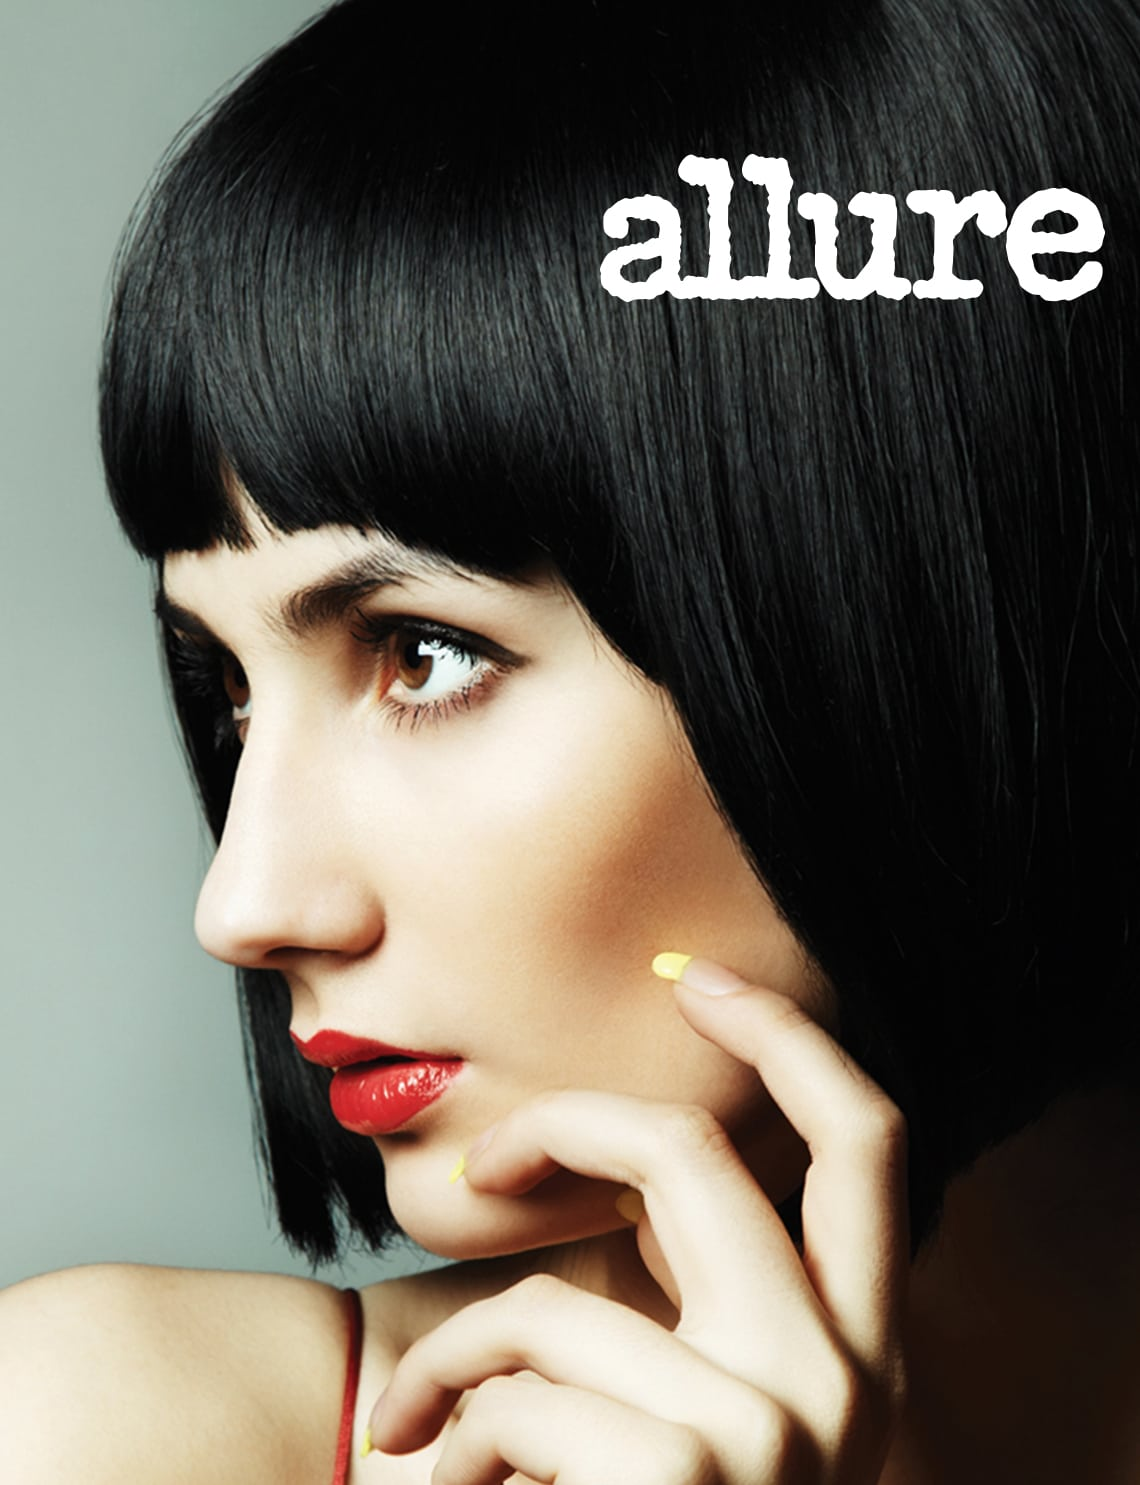 Advertise locally in Allure in more than 100 markets across the U.S.